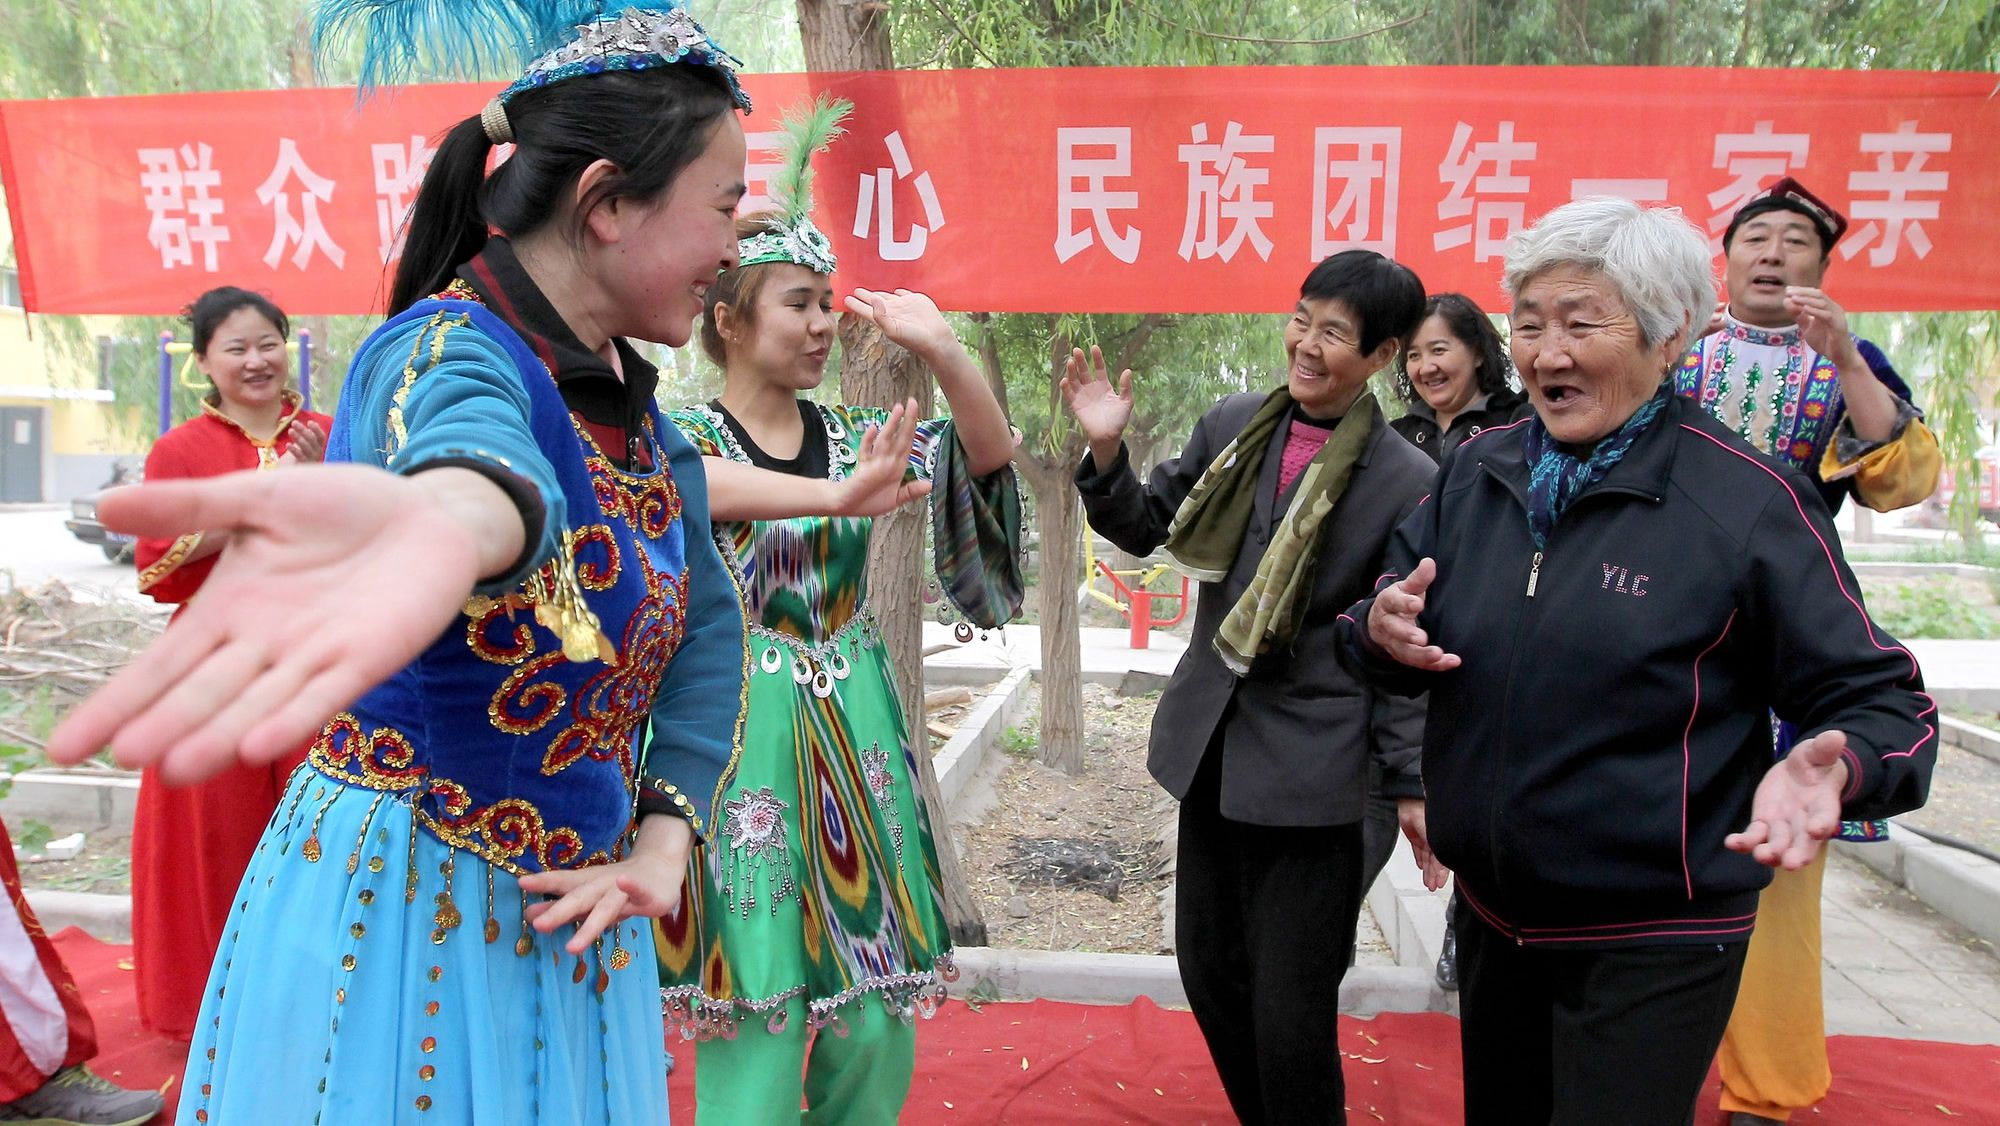 Uygur population in Xinjiang grows steadily